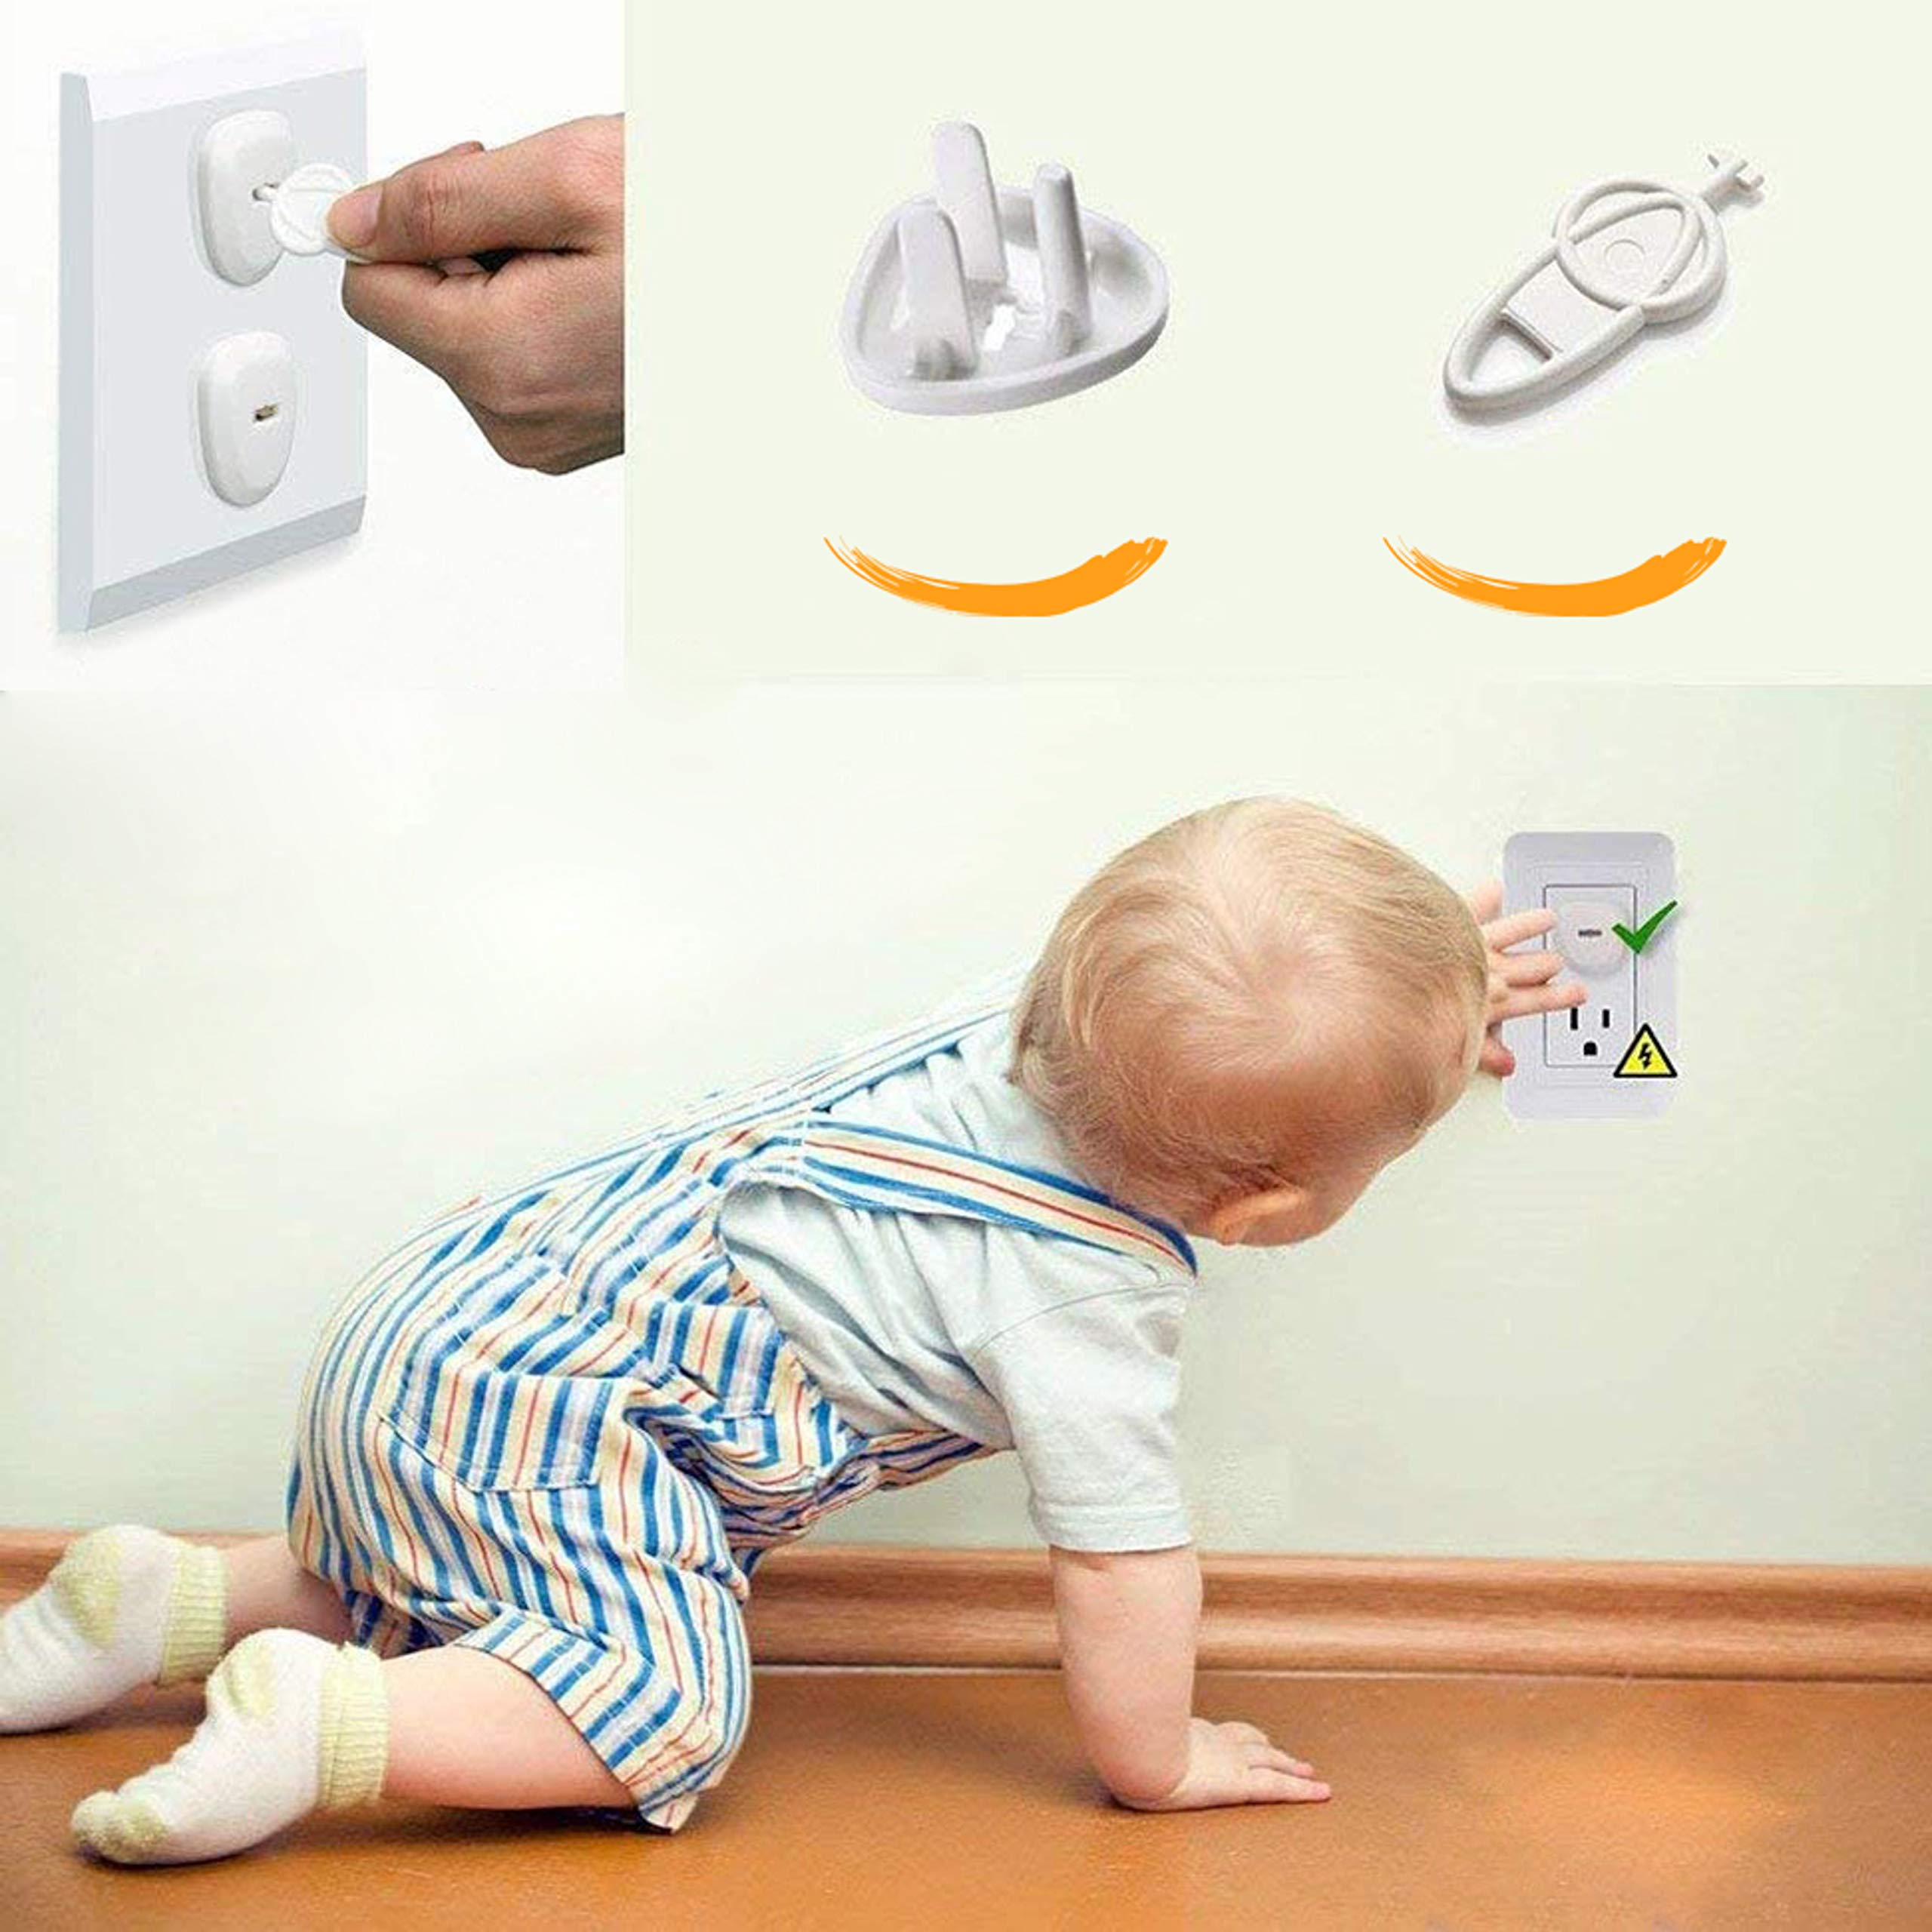 Cabinet Locks Child Safety Latches - Invisible Design | Child Proof Drawer Locks for kids | Baby Proofing Locks for Drawers Cabinets and Closets (12 Pack) - 3M Adhesive, NO Tools NO Drill, By Nivlle by Nivlle (Image #6)